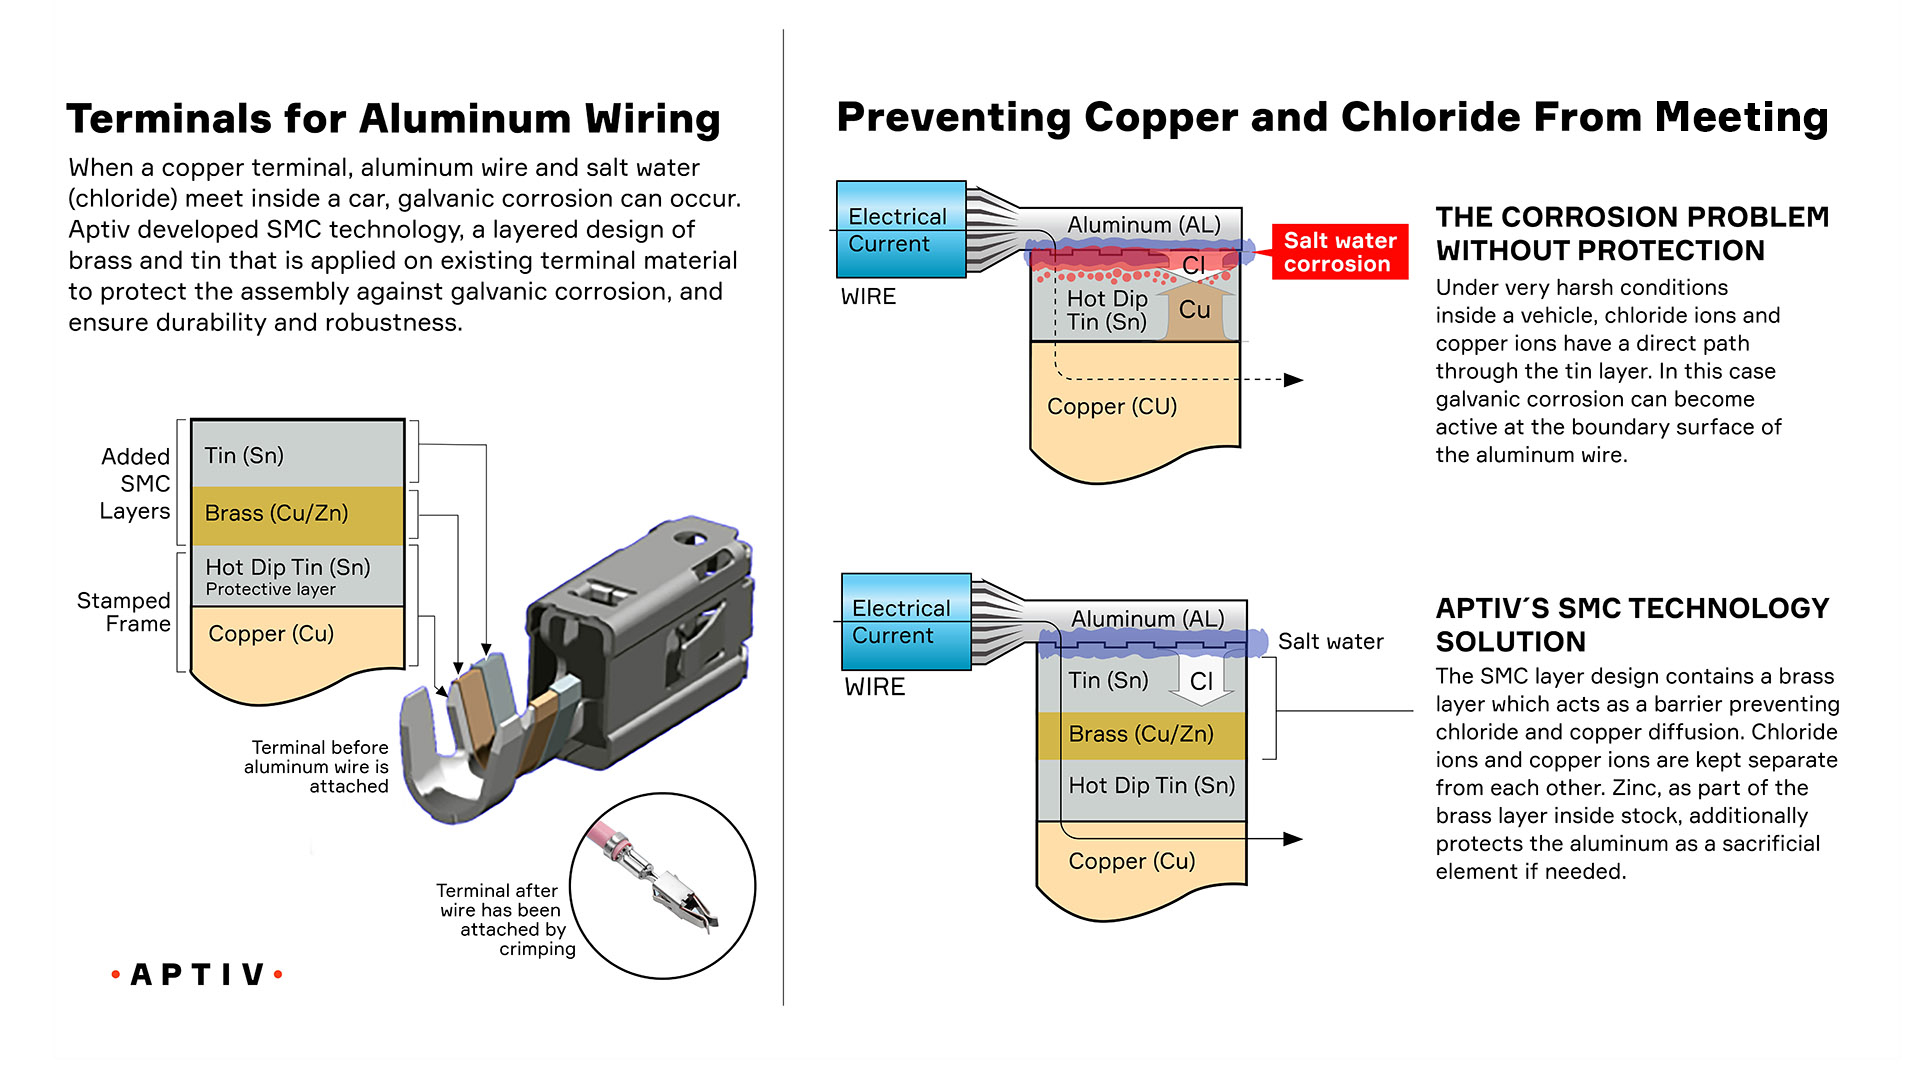 Selective Metal Coating The New Gold Standard For Automotive Wiring Surface Diagram Connecting Aluminum Cable And A Copper Connector To Each Other Requires Additional Complex Technical Requirements Oxide On Outer Of